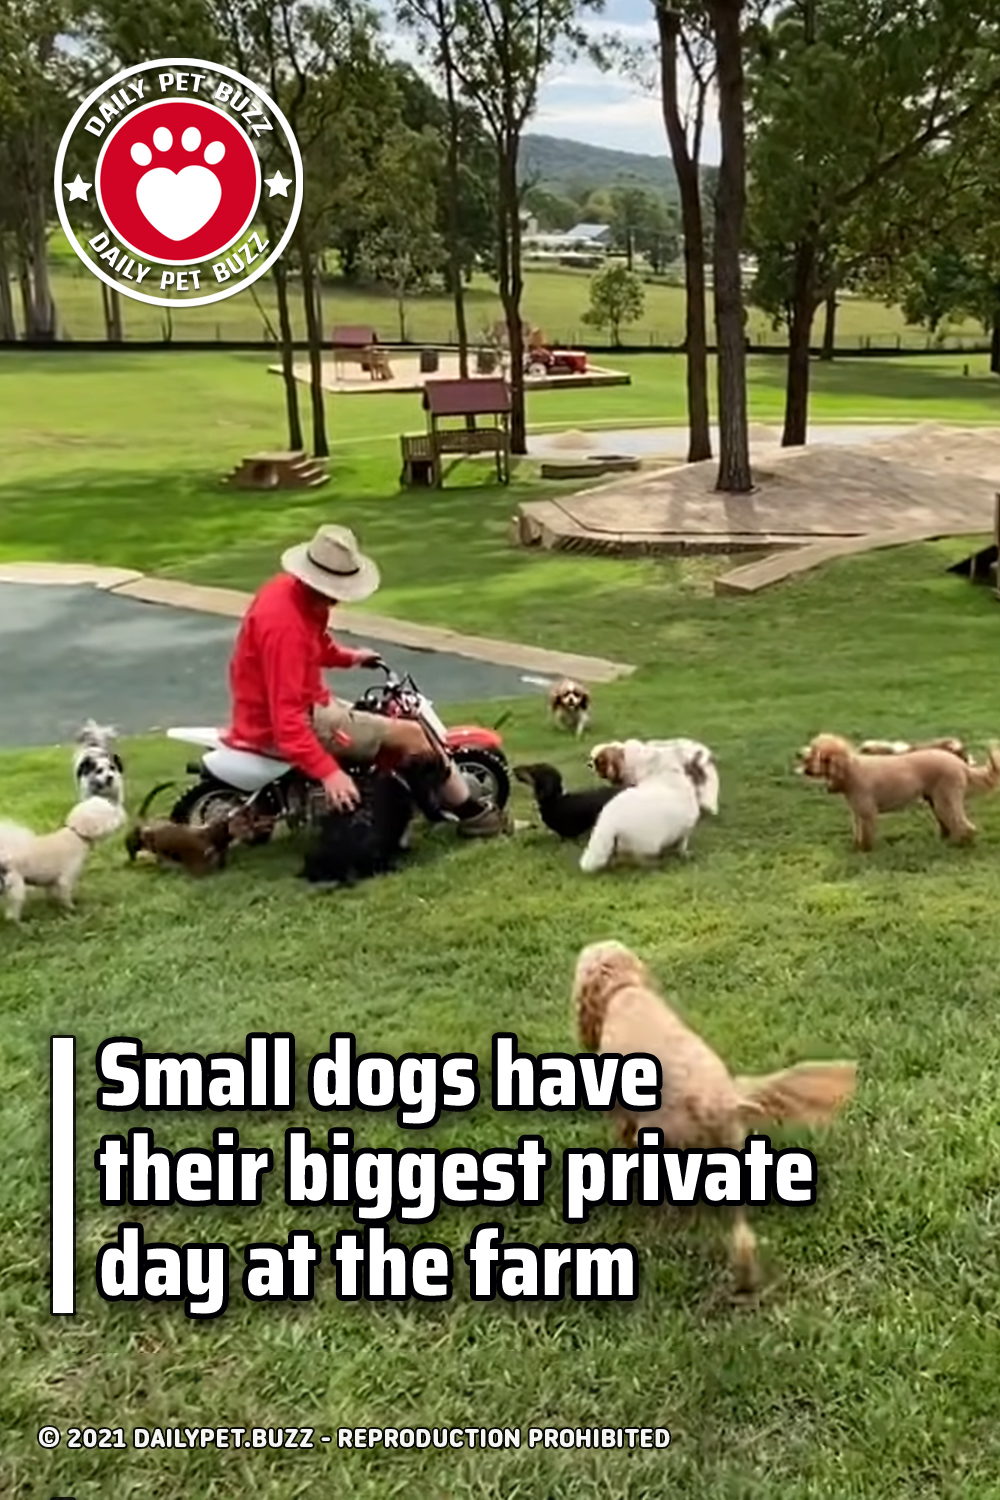 Small dogs have their biggest private day at the farm